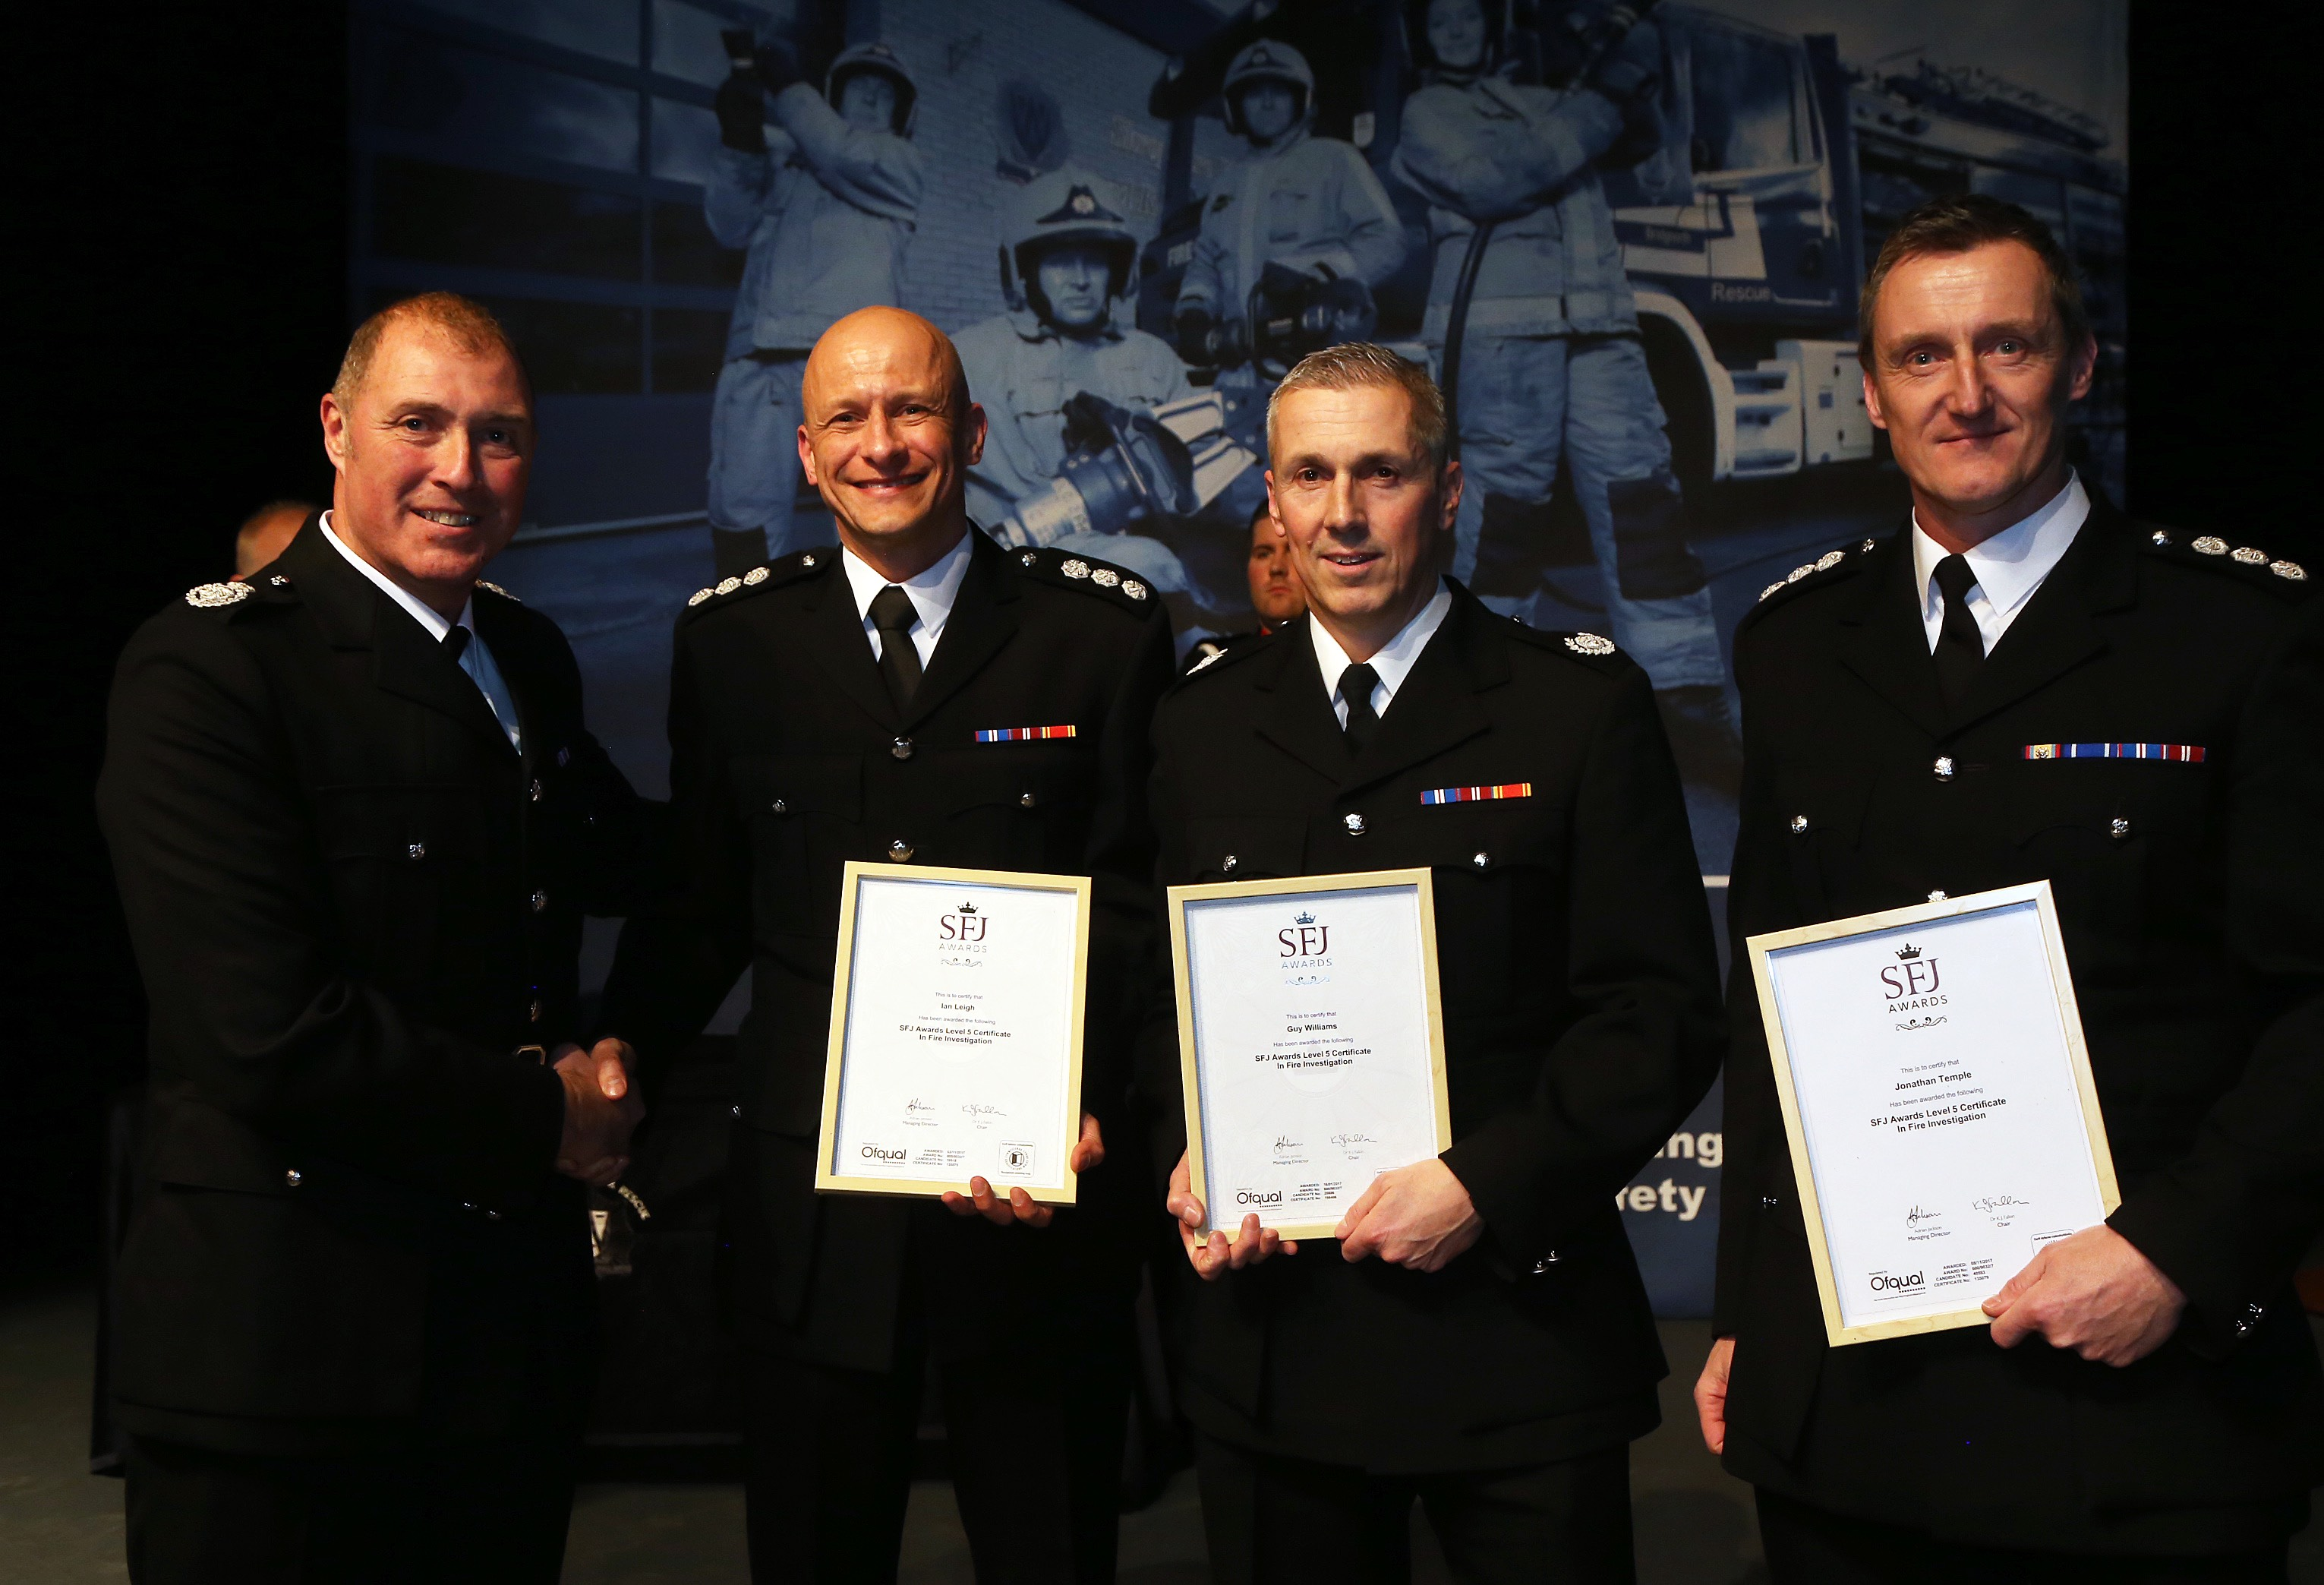 Fire officers Guy Williams, Mark Weaver and Jon Temple with their fire investigation awards